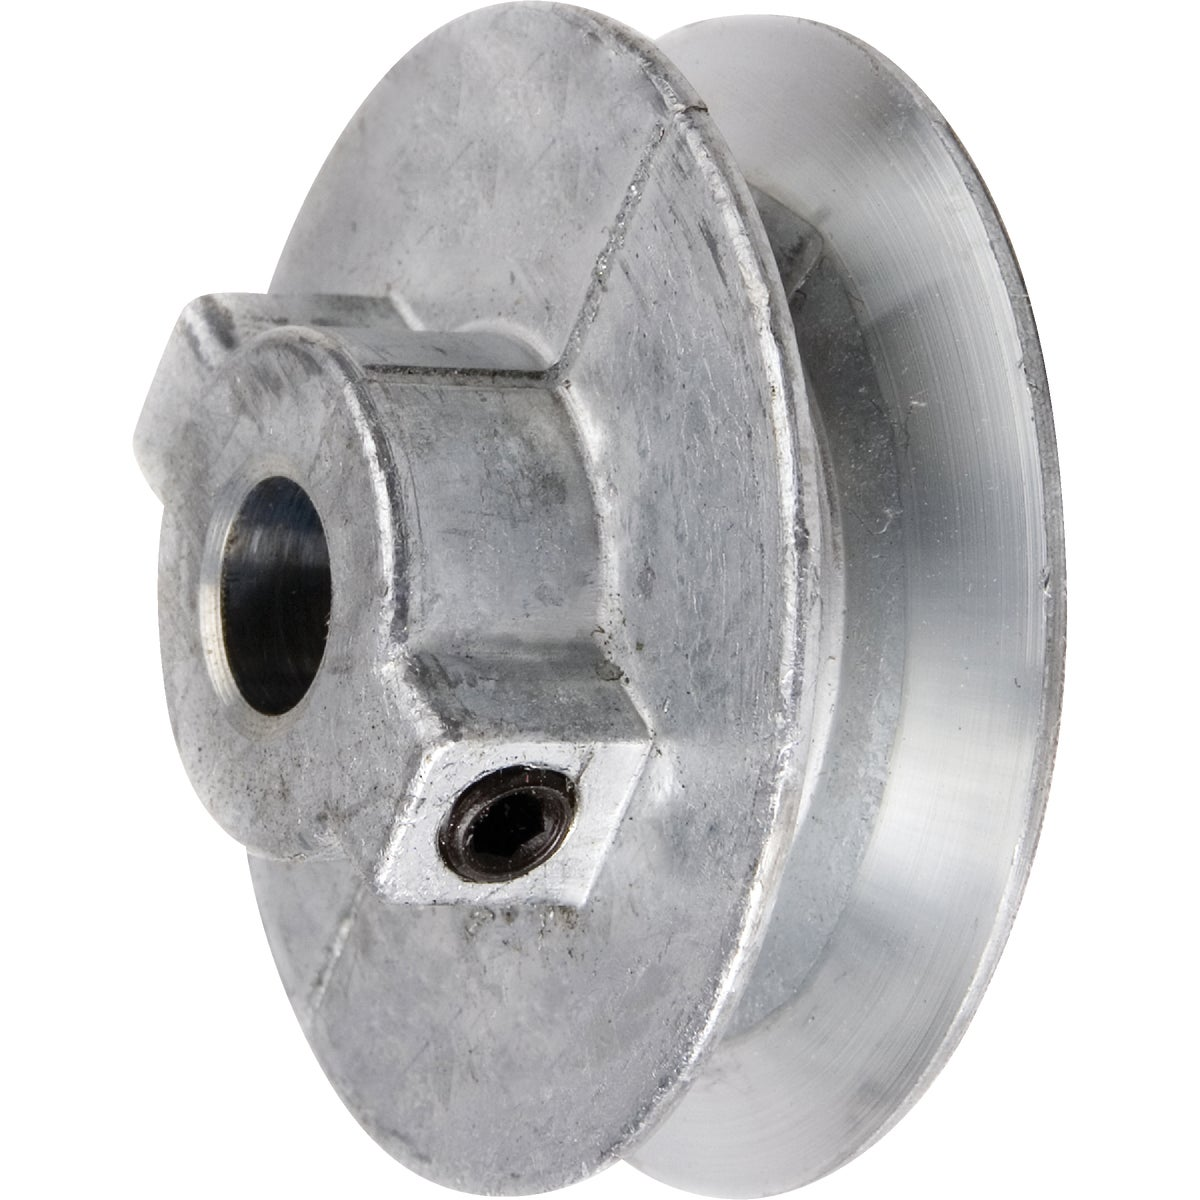 1-3/4X5/8 PULLEY - 175A6 by Chicago Die Casting